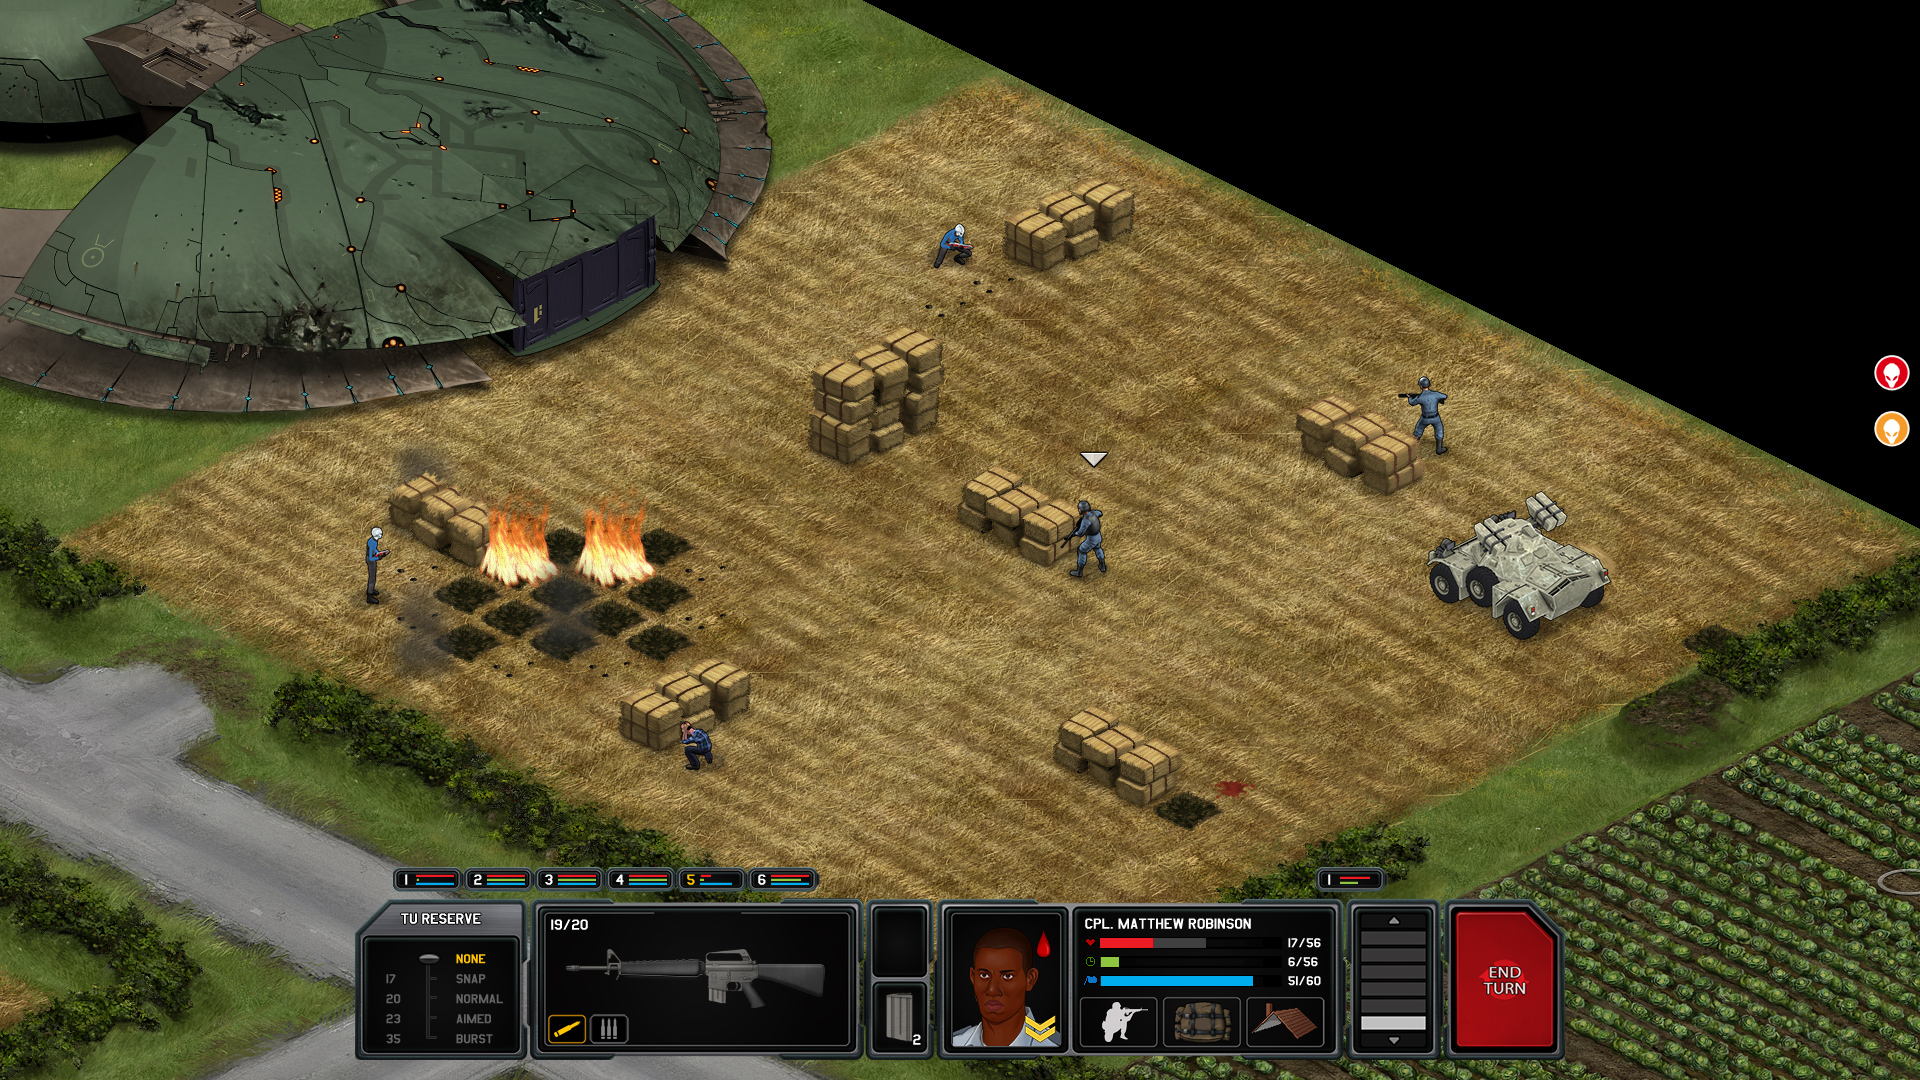 Xenonauts is a turnbased science fiction video game developed and published as the maiden title of Londonbased independent game studio Goldhawk Interactive Inspired by the 1994 game UFO Enemy Unknown Called XCOM UFO Defense in North America gameplay involves the player taking the role of the commander of a clandestine organization